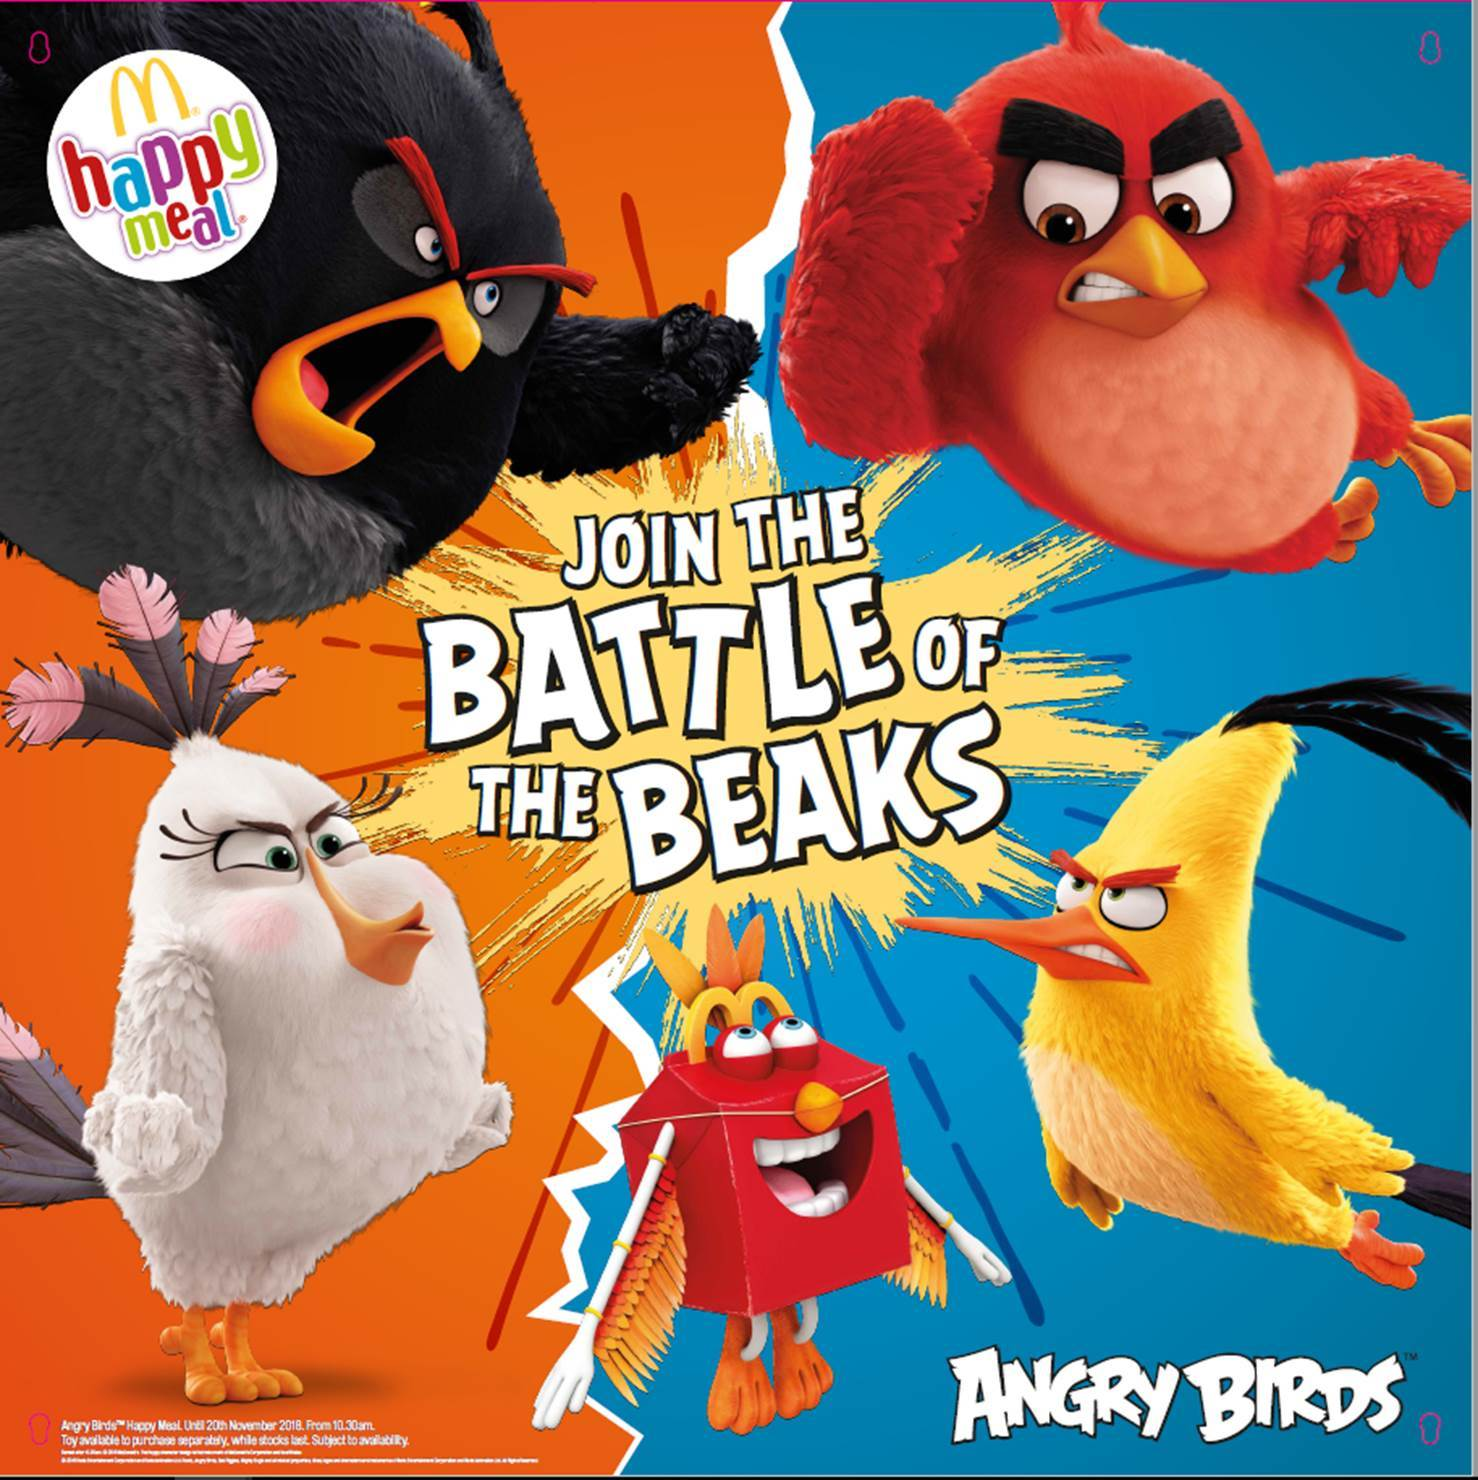 Click to see the Angry Birds campaign